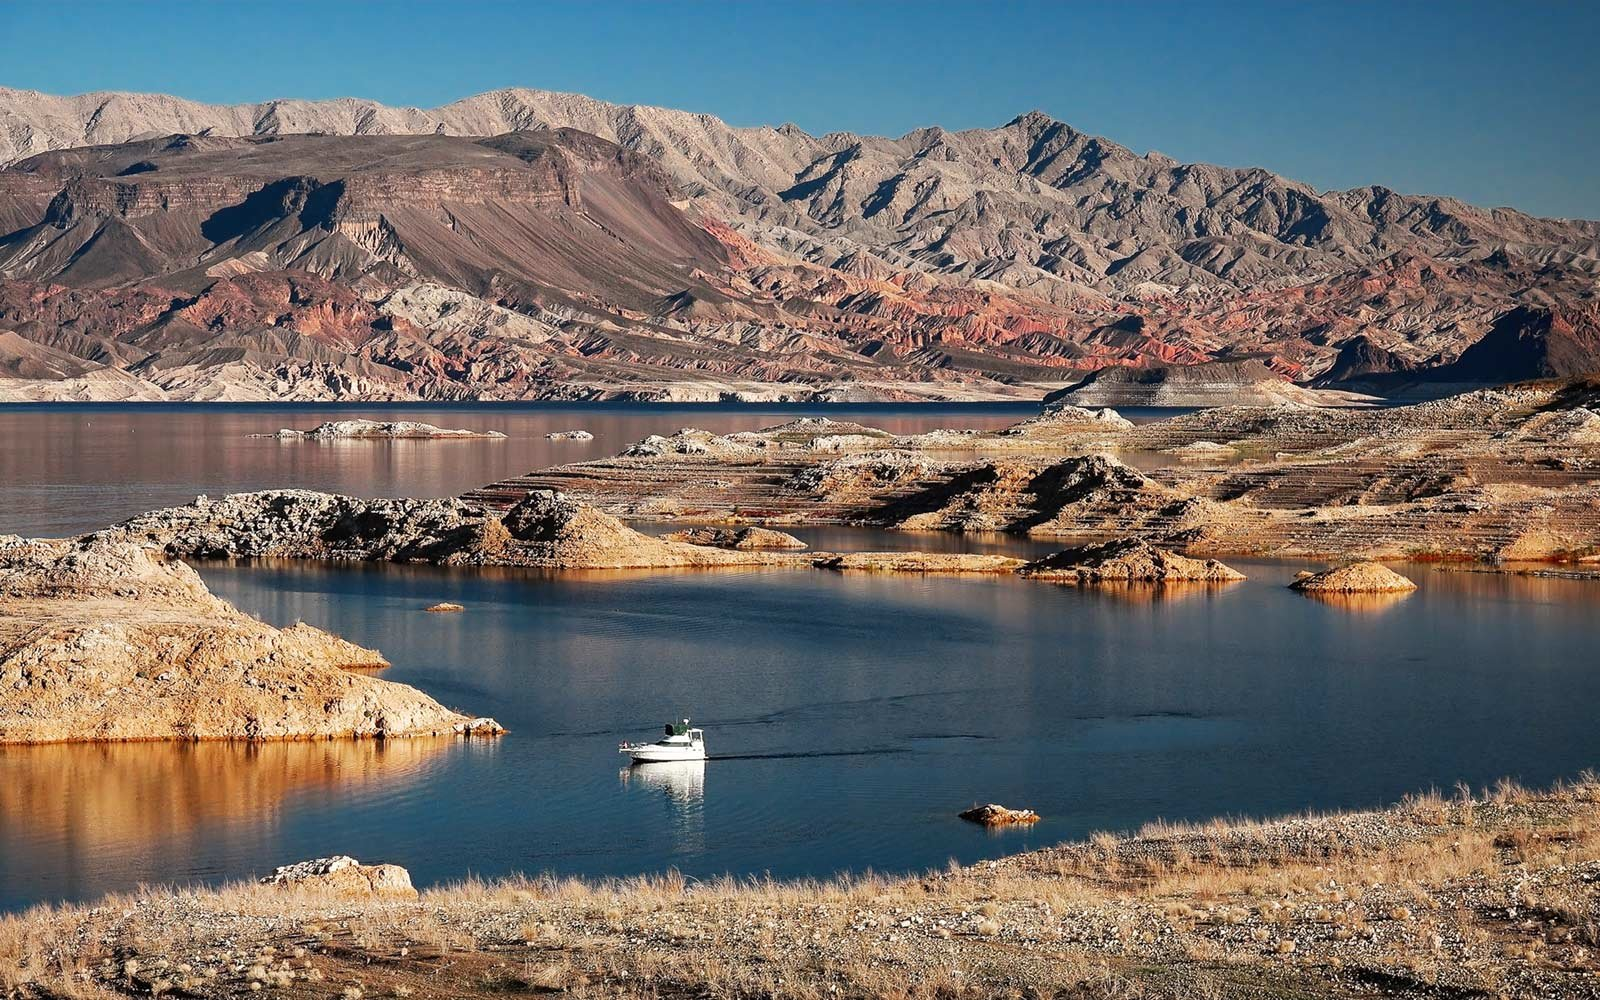 Lake Mead National Recreation Area, Nevada